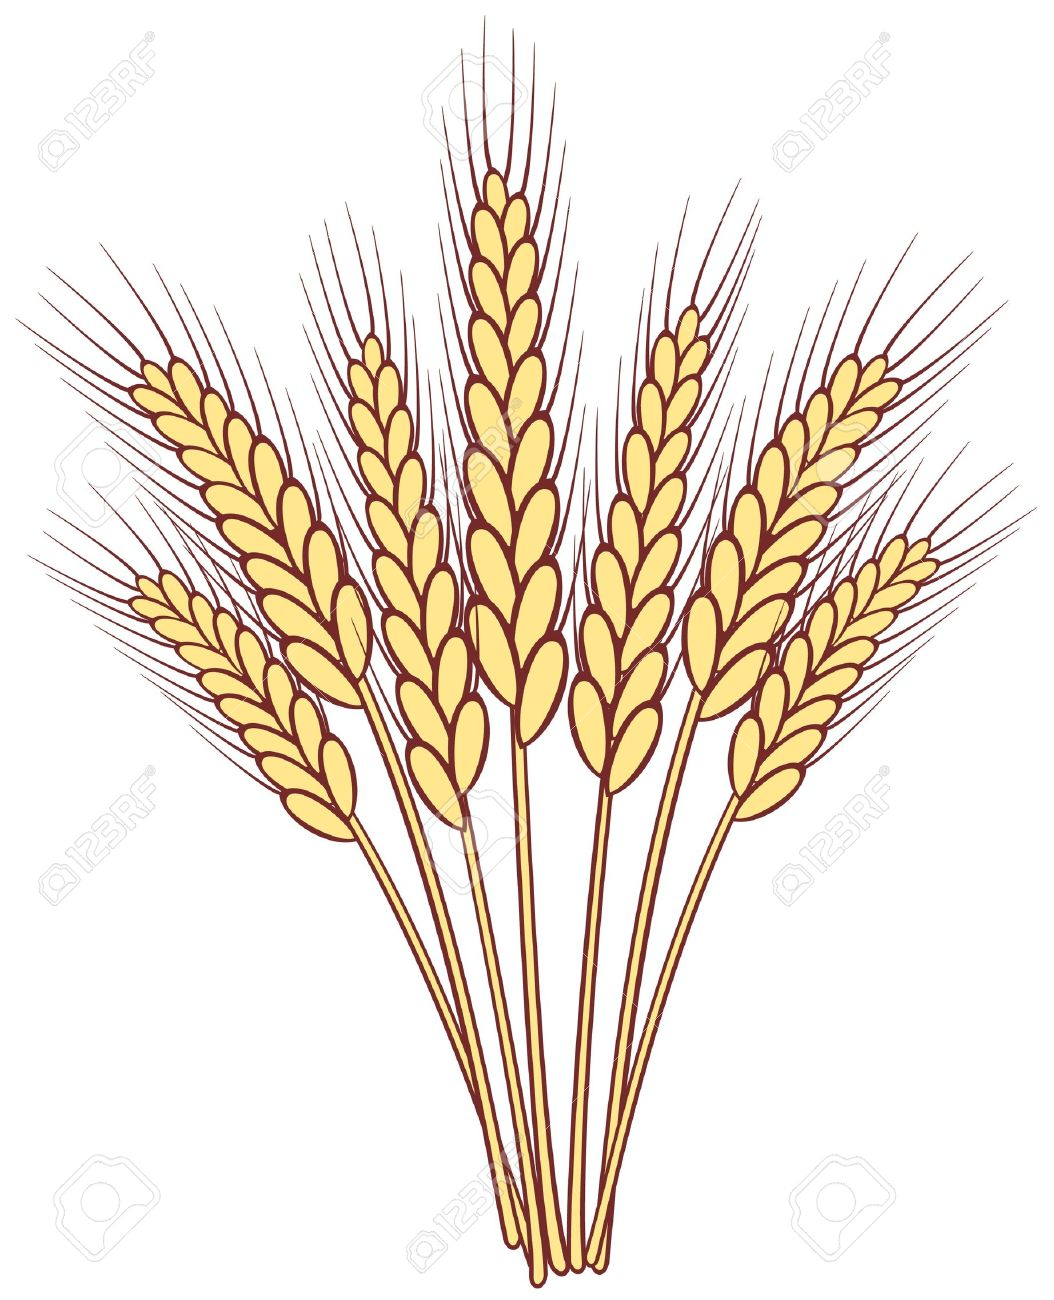 Barley clipart wheat Download clipart Wheat Download clipart